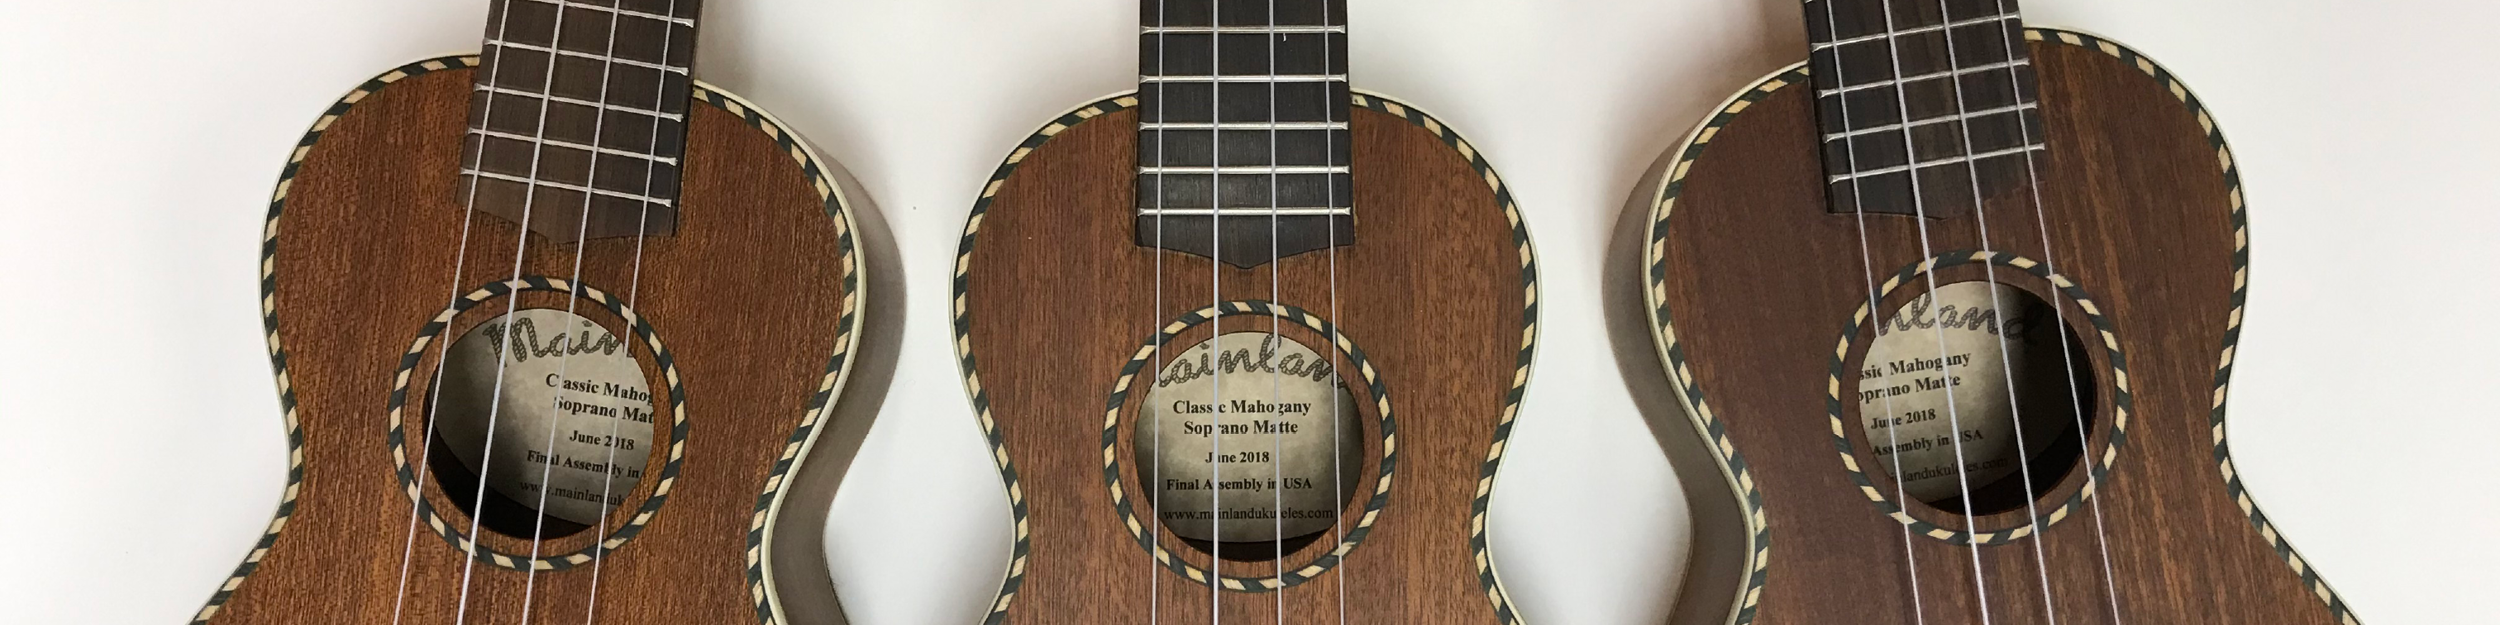 ukulele for checkout at mead public library